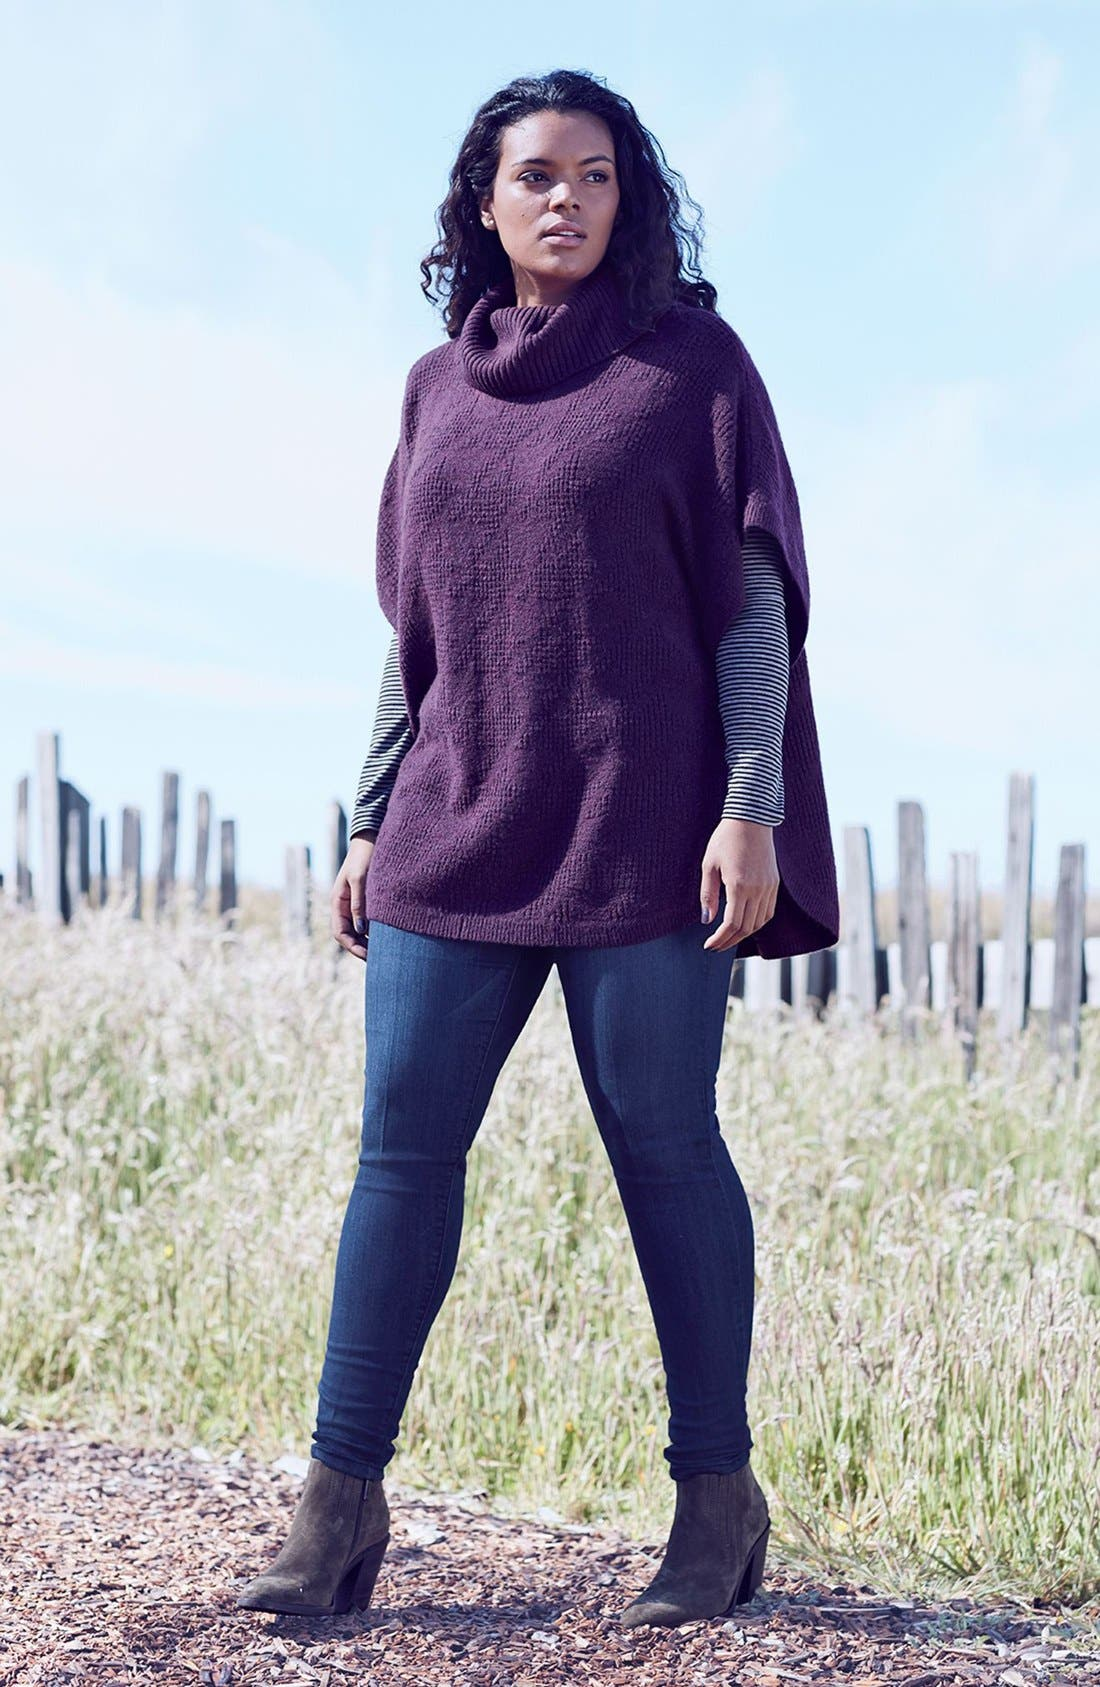 Sejour Sweater & Wit & Wisdom Skinny Jeans Outfit with Accessories (Plus Size)